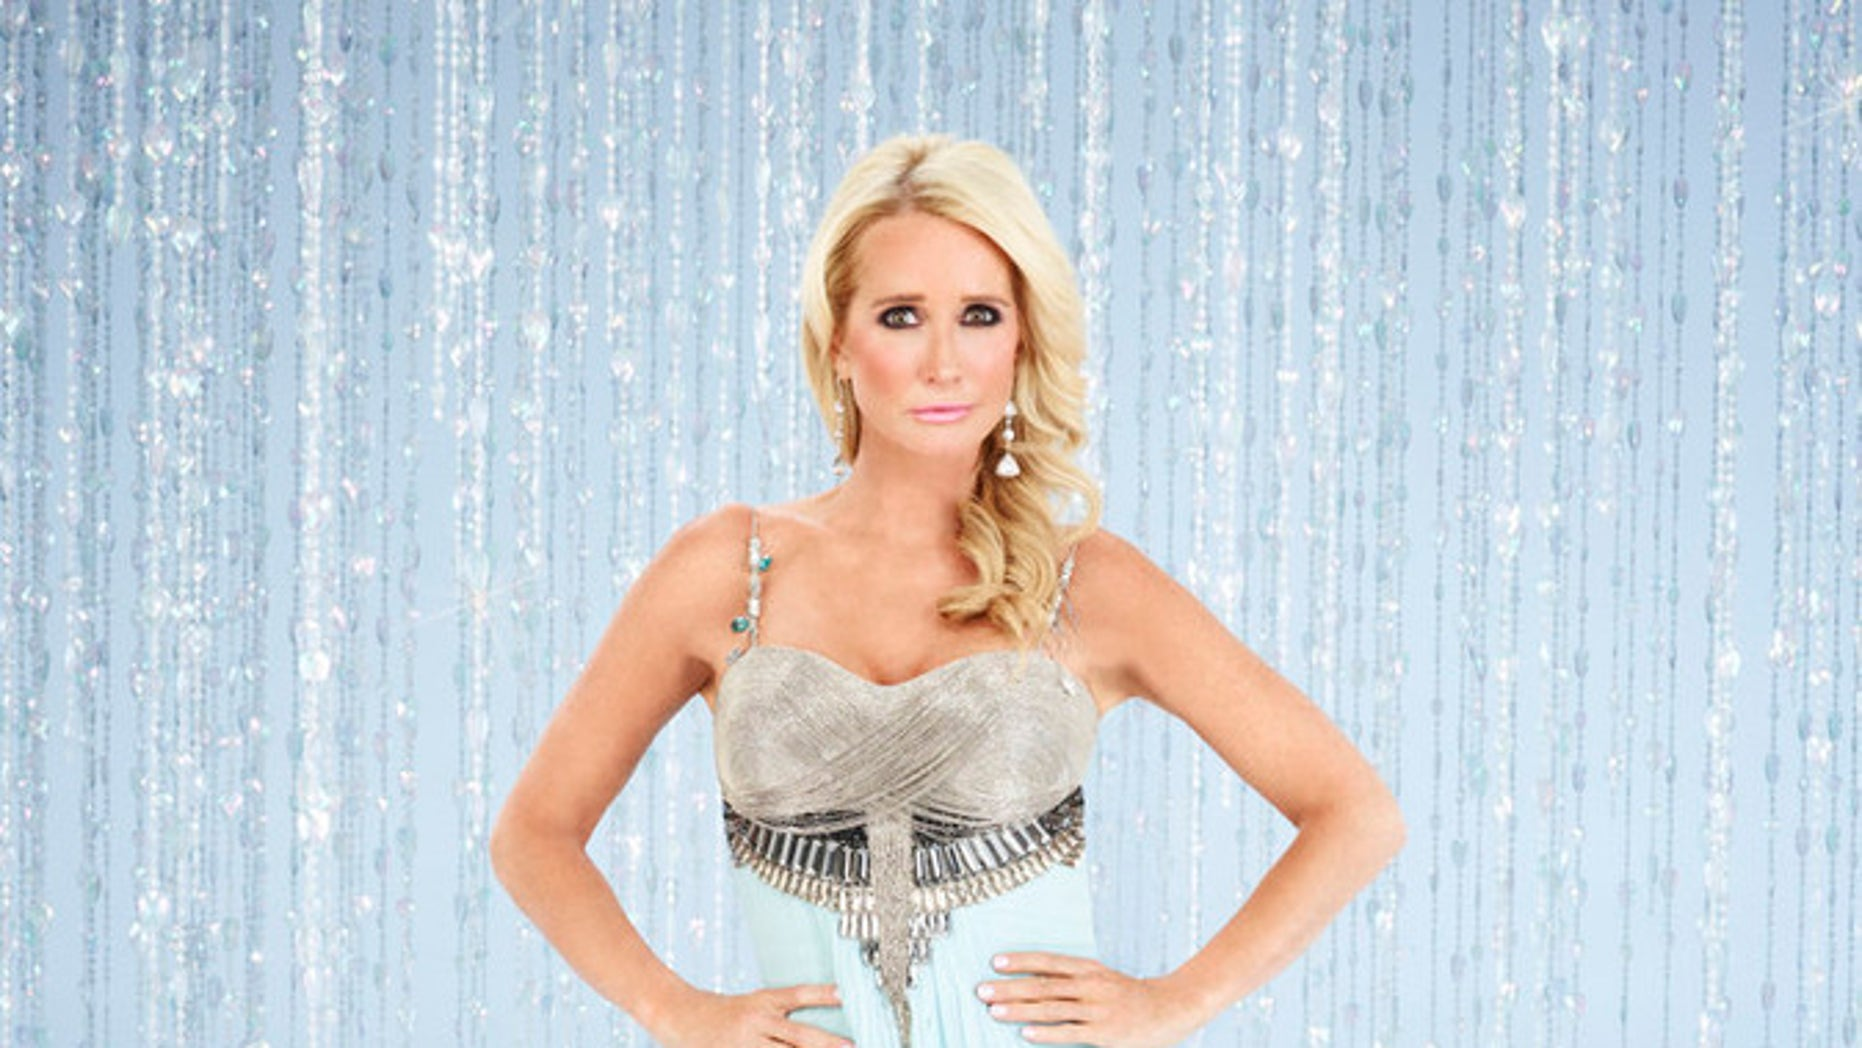 THE REAL HOUSEWIVES OF BEVERLY HILLS -- Season: 4 -- Pictured: Kim Richards -- (Photo by: Rodolfo Martinez/Bravo)